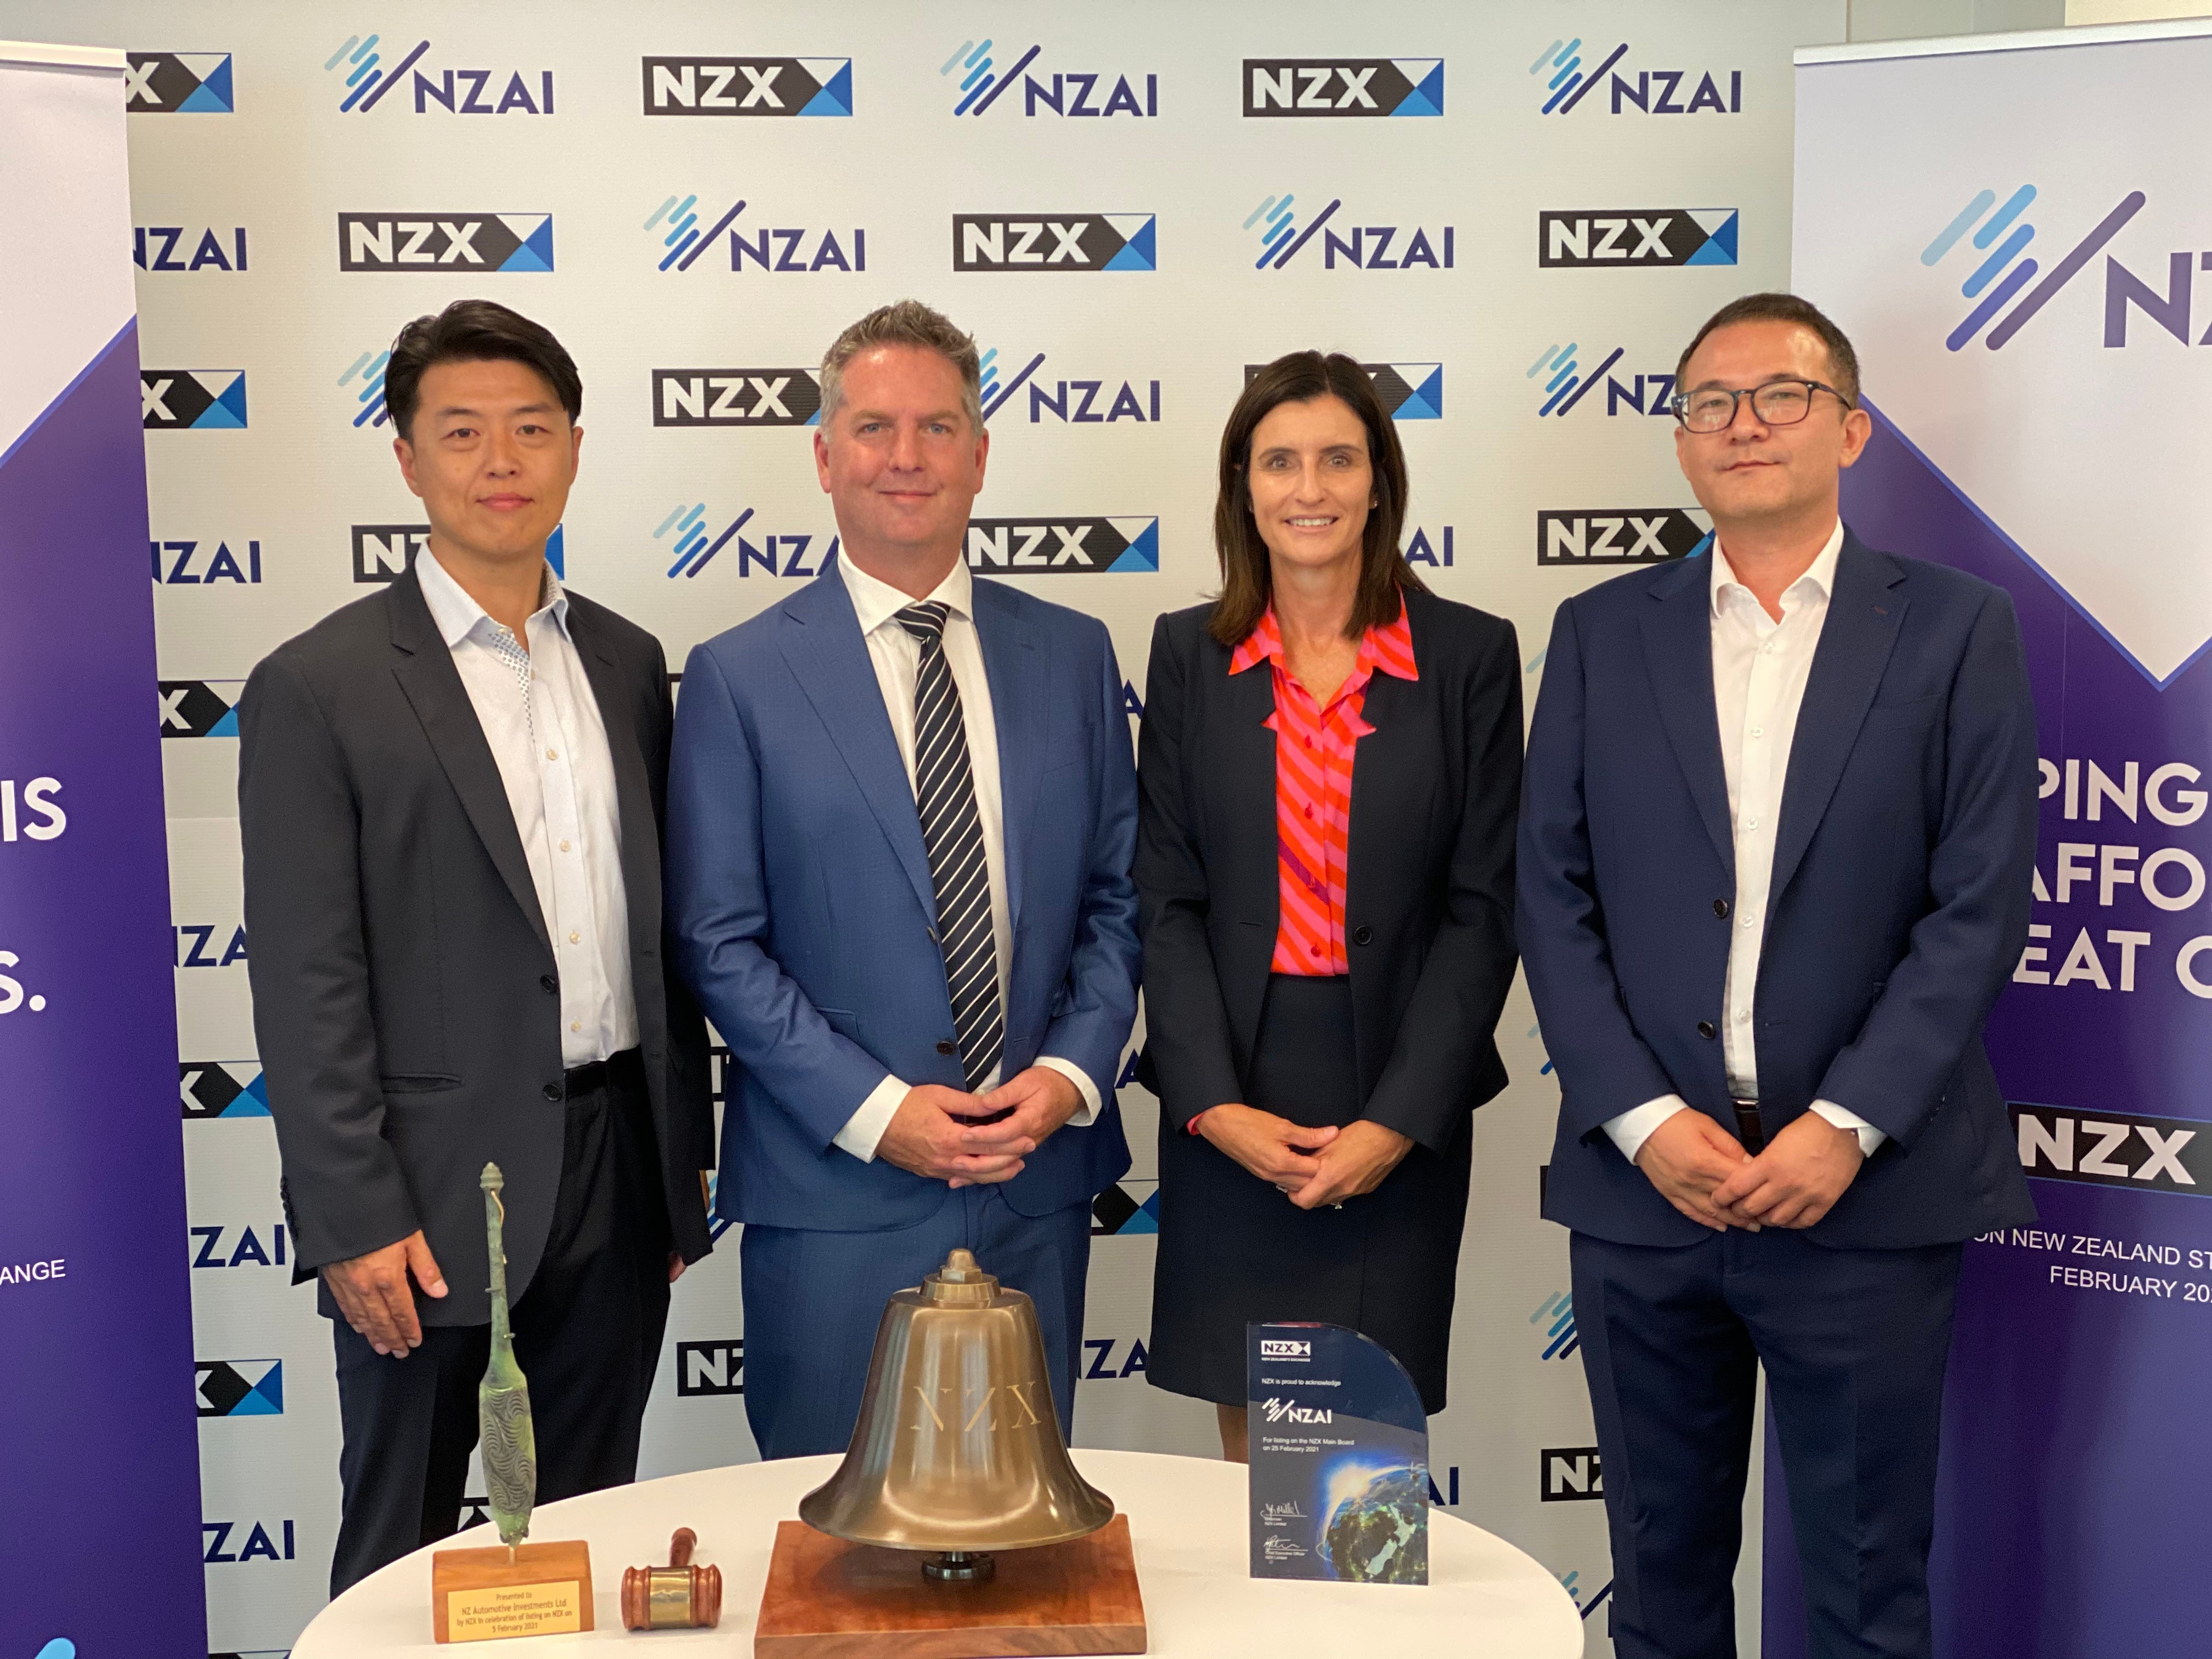 NZAI - Direct Listing on the NZX Main Board